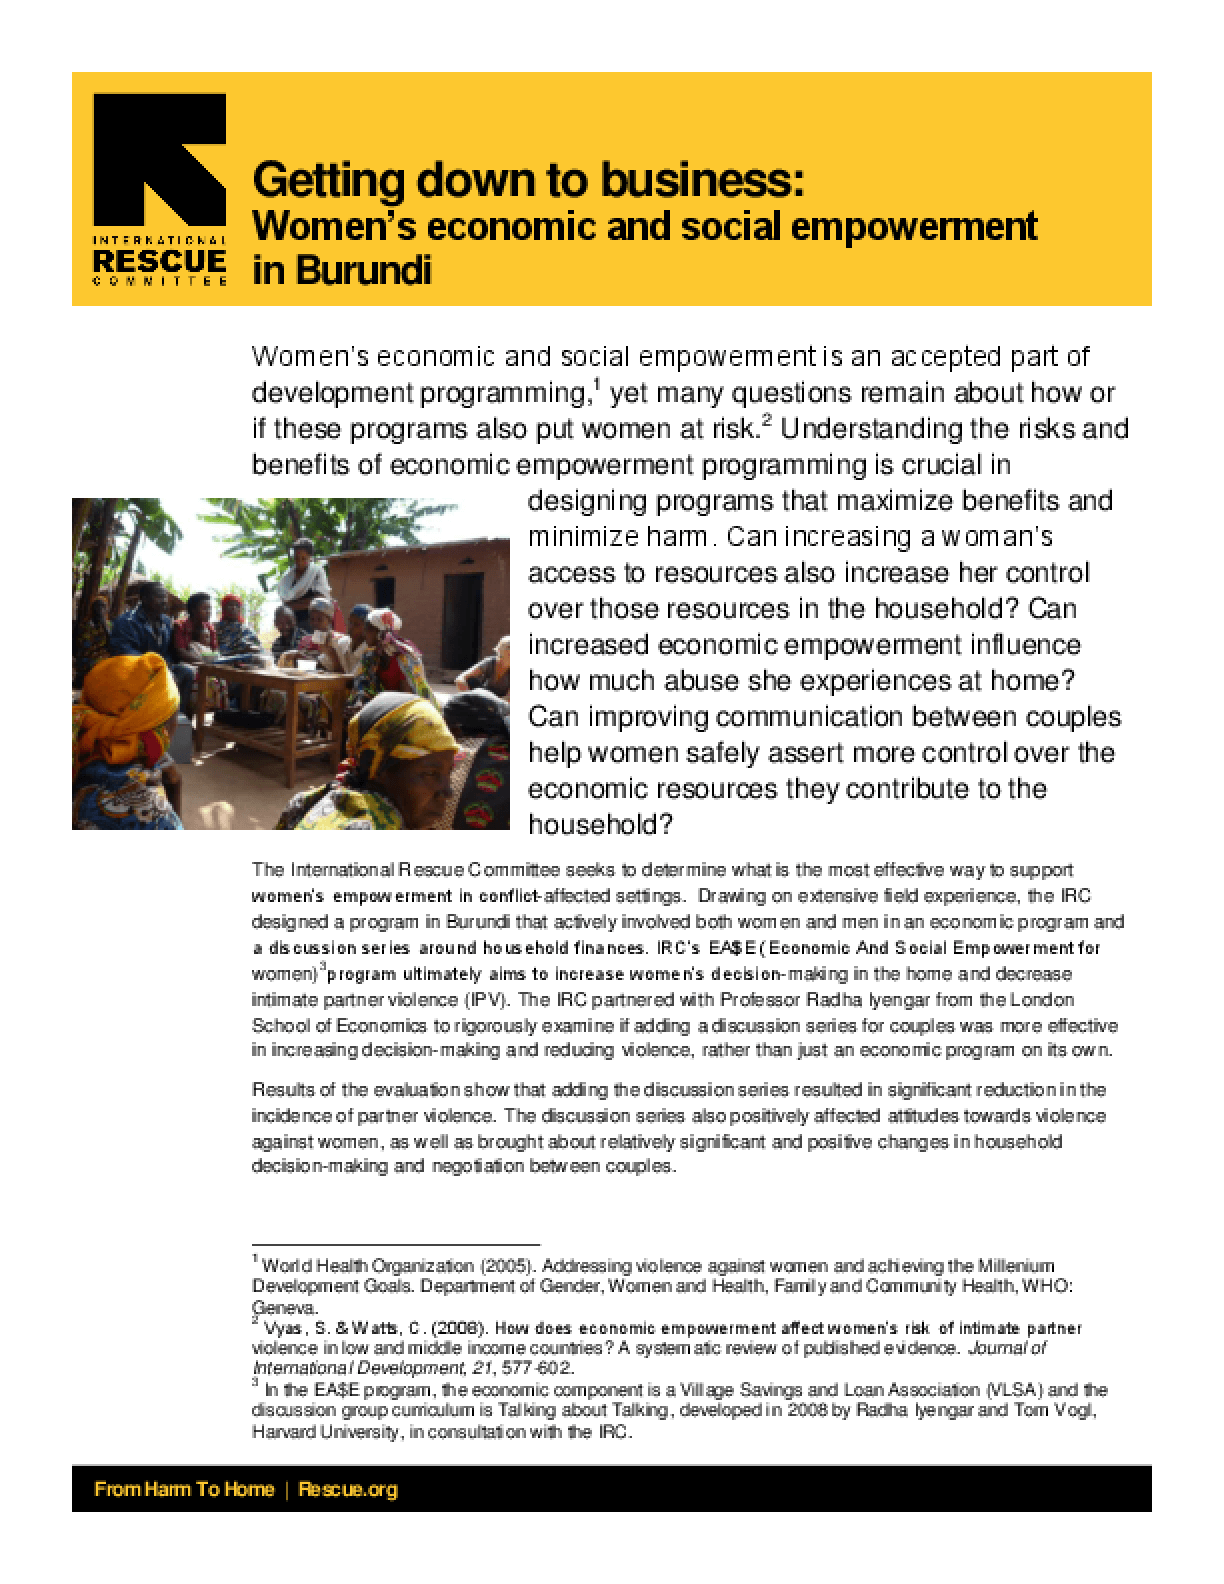 Getting Down to Business: Women's Economic and Social Empowerment in Burundi